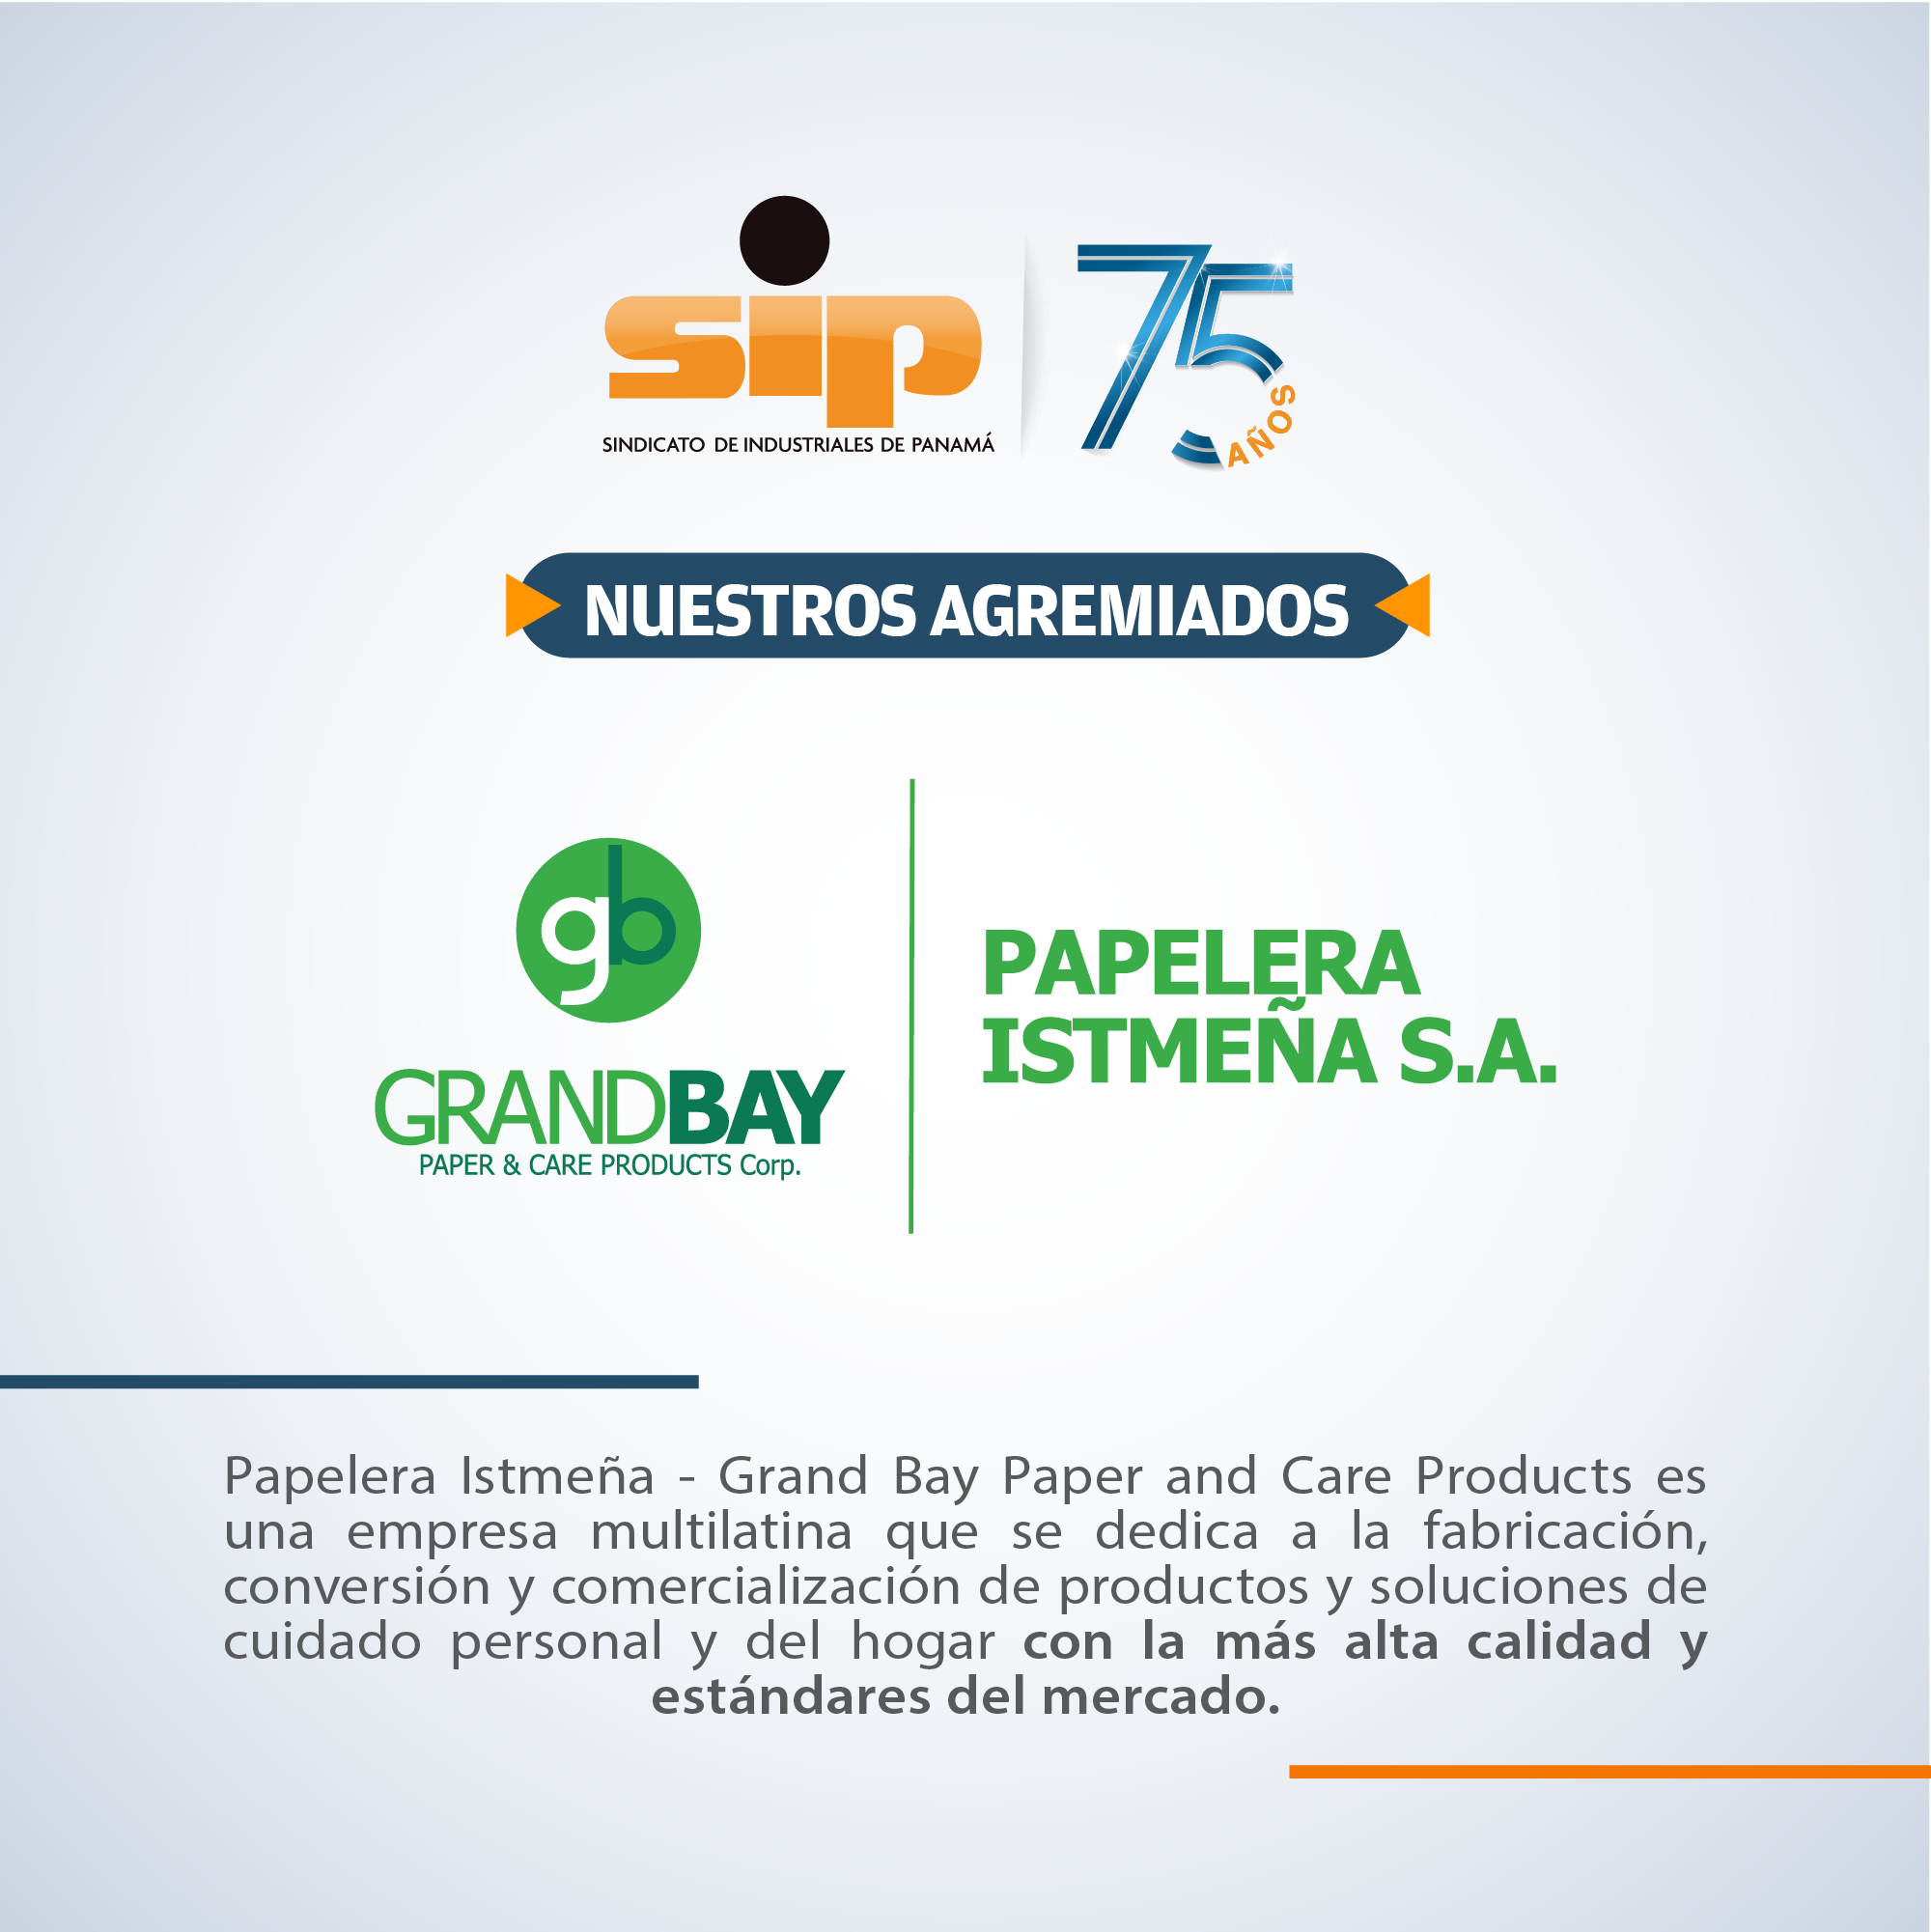 Papelera Istmeña - Grand Bay Paper and Care Products